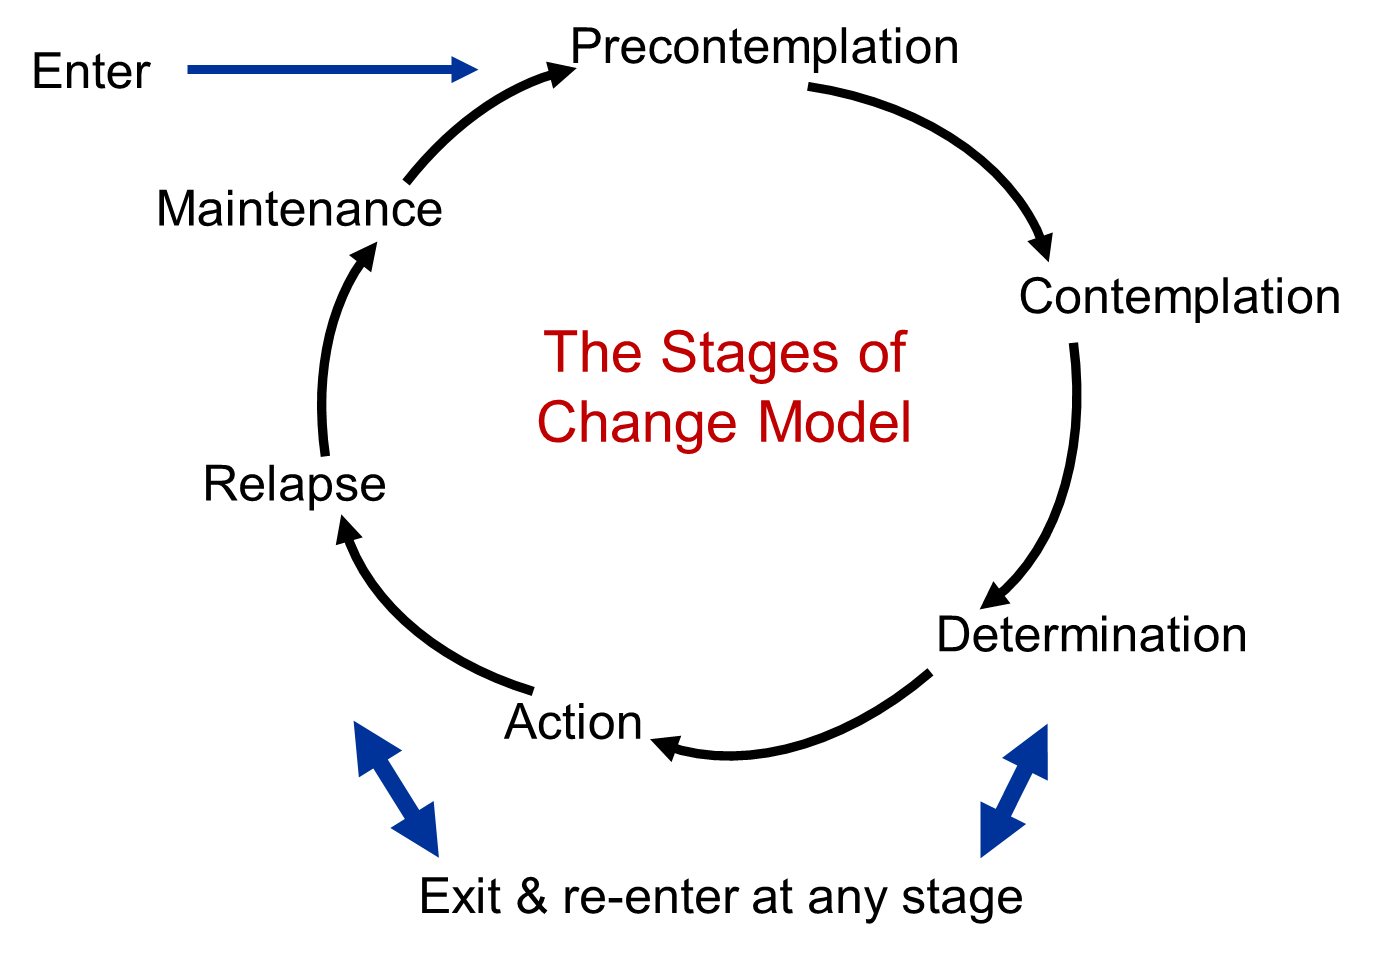 the commitment to the health and the trans theoretical model of behavior changes according to profes Rather, change in behavior, especially habitual behavior, occurs continuously through a cyclical process the ttm is not a theory but a model different behavioral theories and constructs can be applied to various stages of the model where they may be most effective.